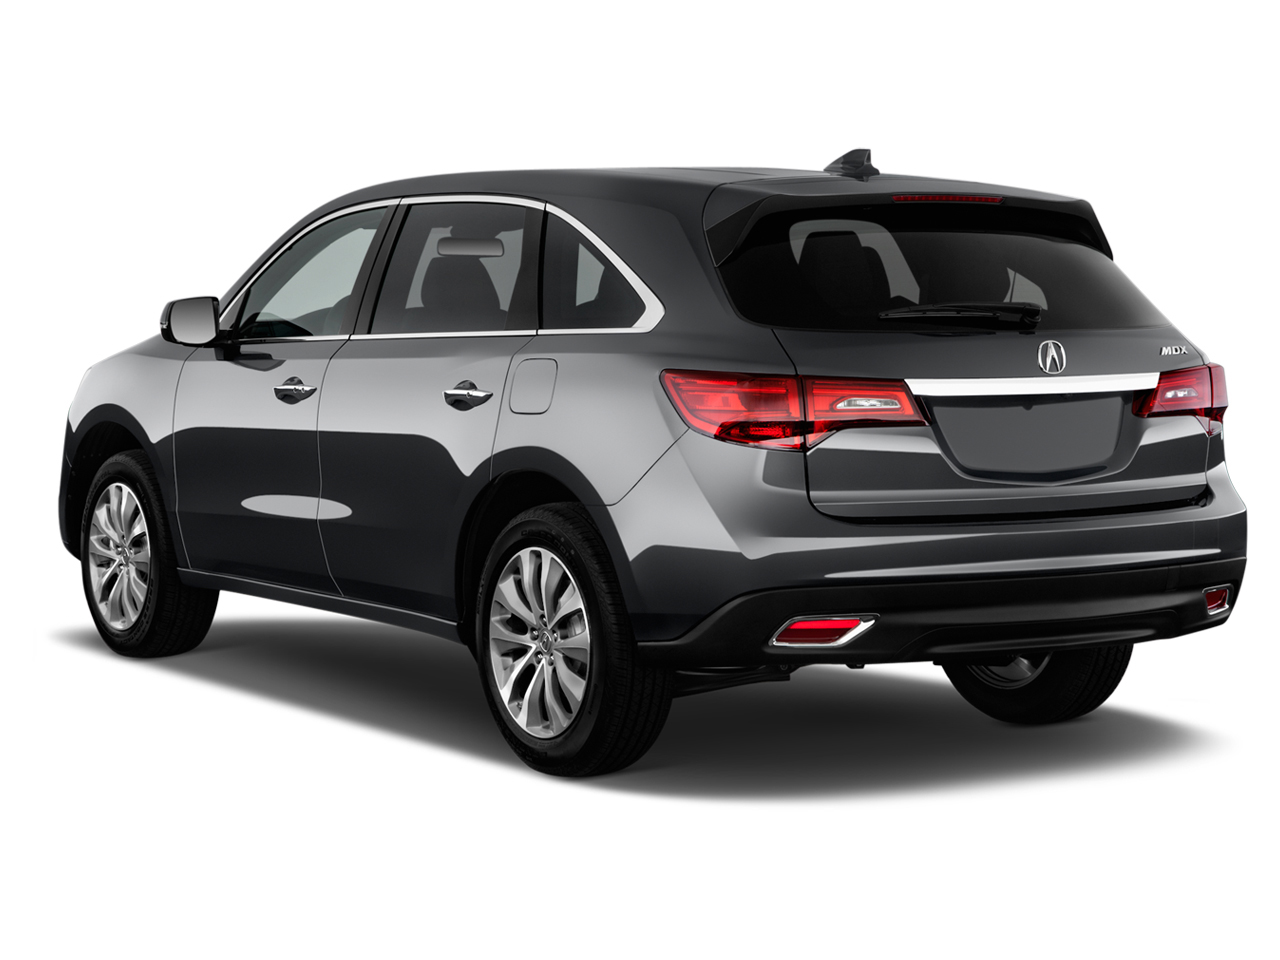 2017 Acura MDX together with 2014 Acura MDX besides 2005 Acura MDX ...